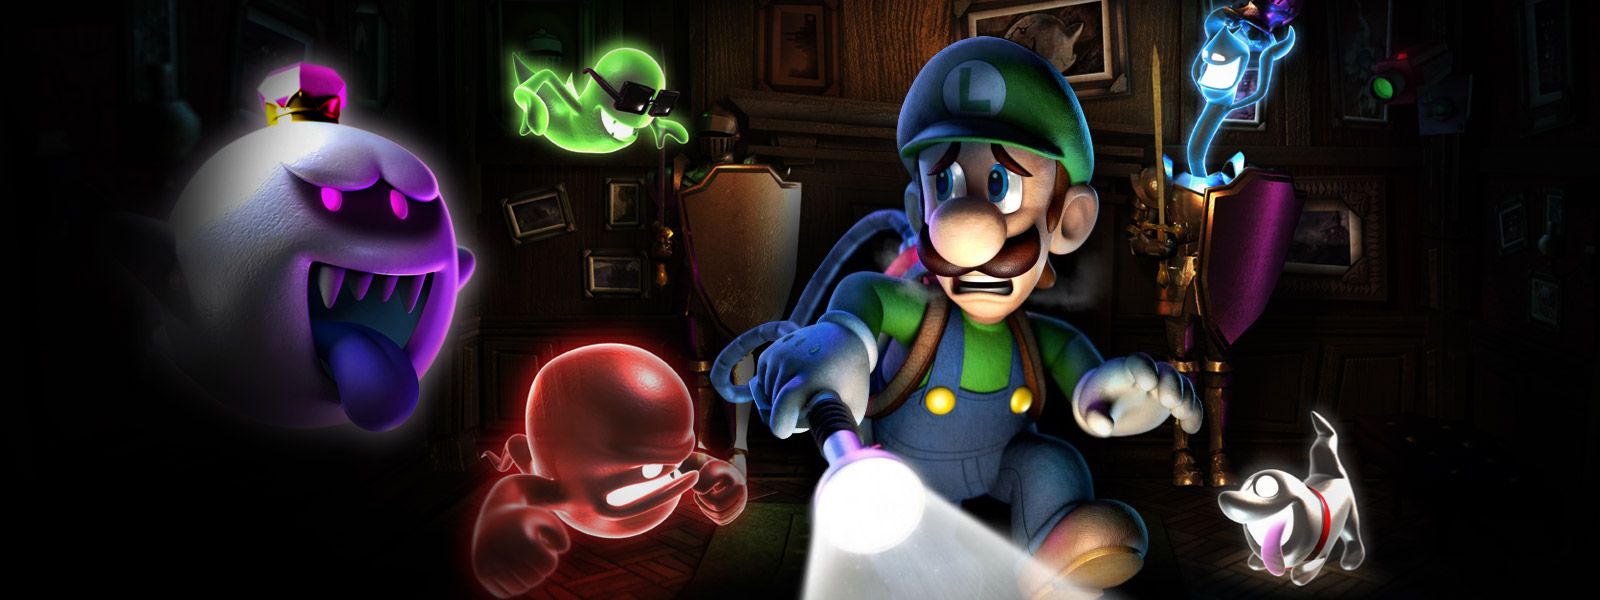 Vos jeux finis en 2019 - Page 10 Luigismansion2_032013_16001